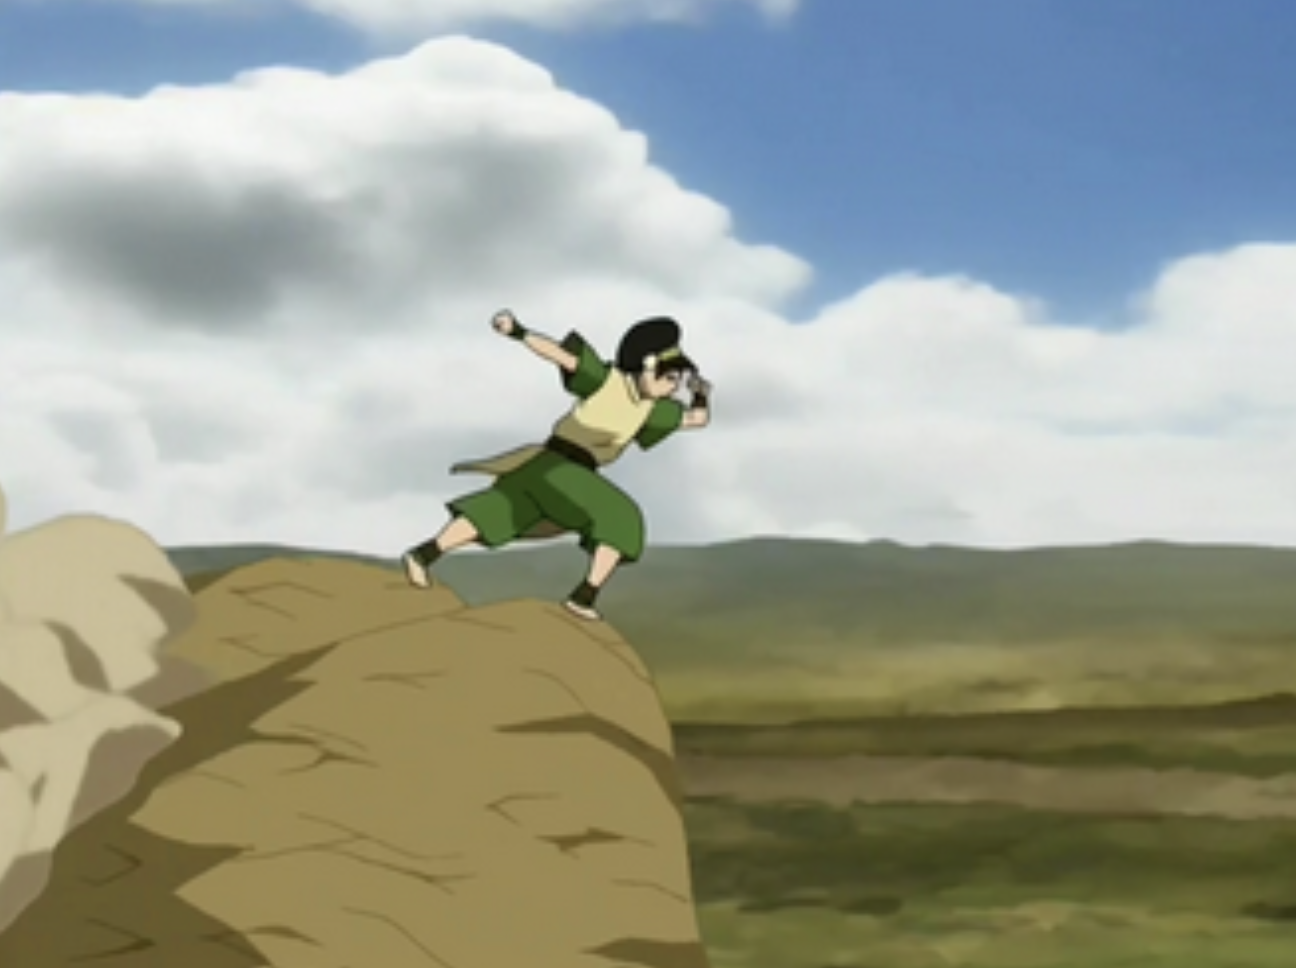 The Physics Of Earthbending The Physics Of Avatar The Last By Zia Steele Whiteboard To Infinity Medium Forgive me if someone's posted about this before, but i've searched this sub for a bit and i couldn't find anything in the case of your question, though, what defines earthbending? earthbending the physics of avatar